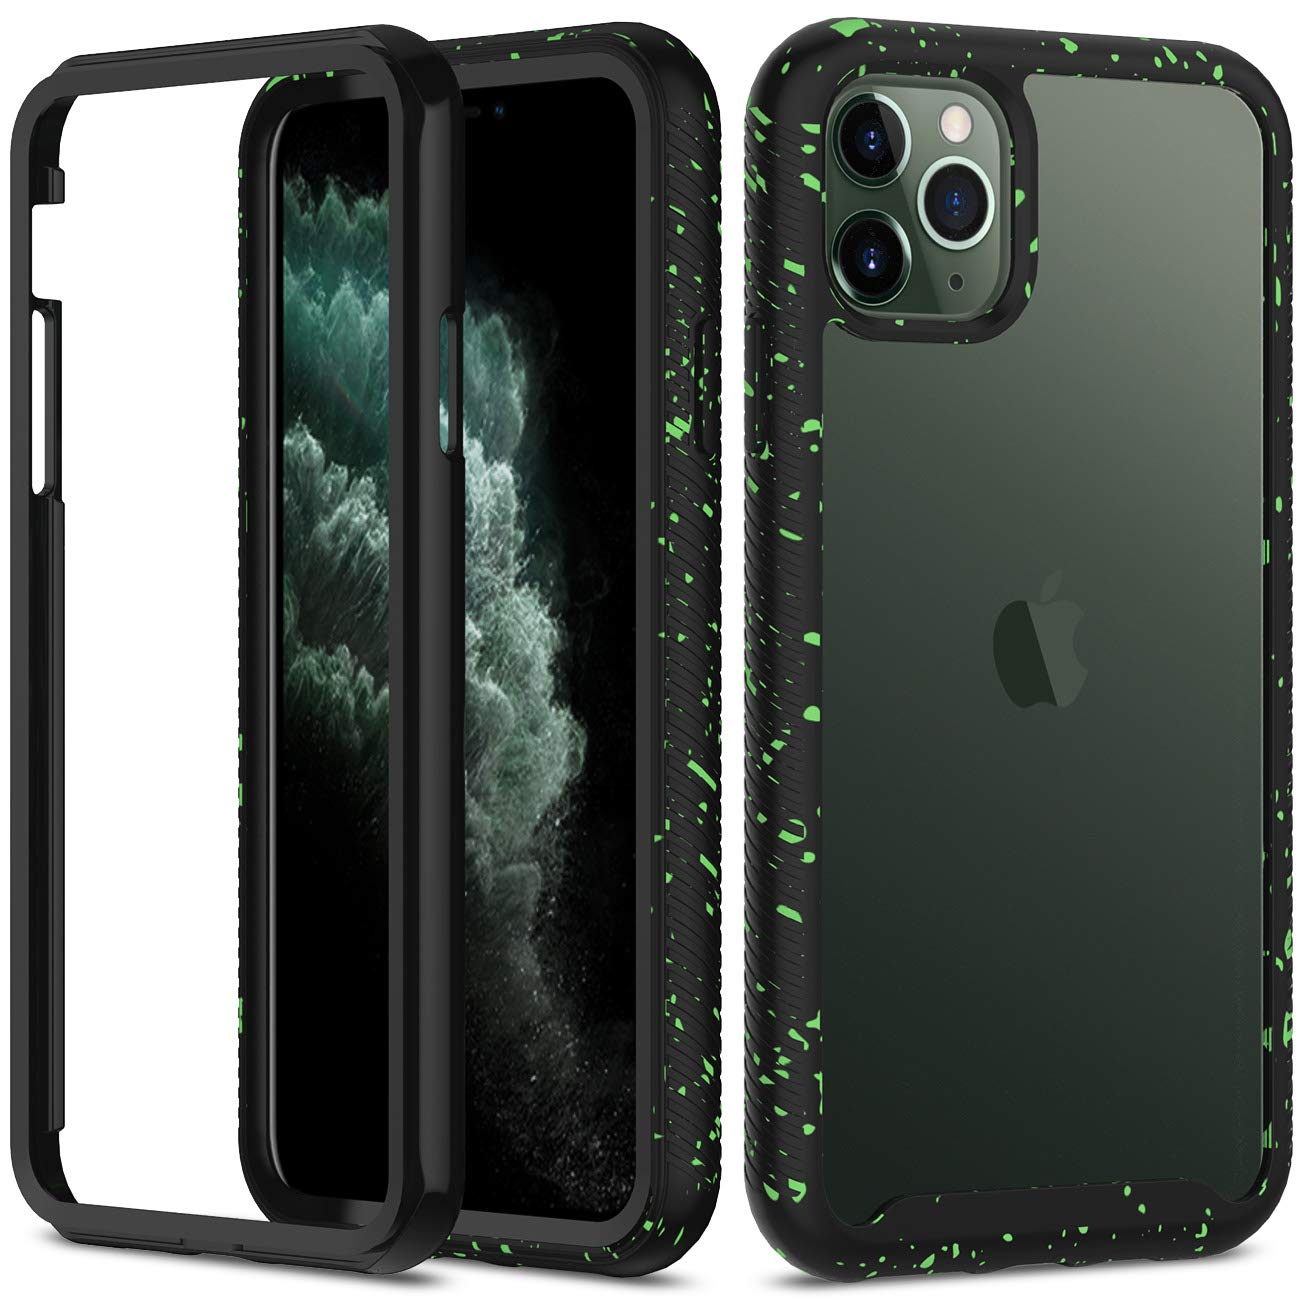 iPhone 11 Pro Max Case, Aeska [Shock Absorbent] Dual Layer Hybrid Shockproof Defender Heavy Duty Crystal [Clear] Hard Back Non-Slip Soft TPU Rubber Bumper Protective Case for iPhone 11 Pro Max (Black)